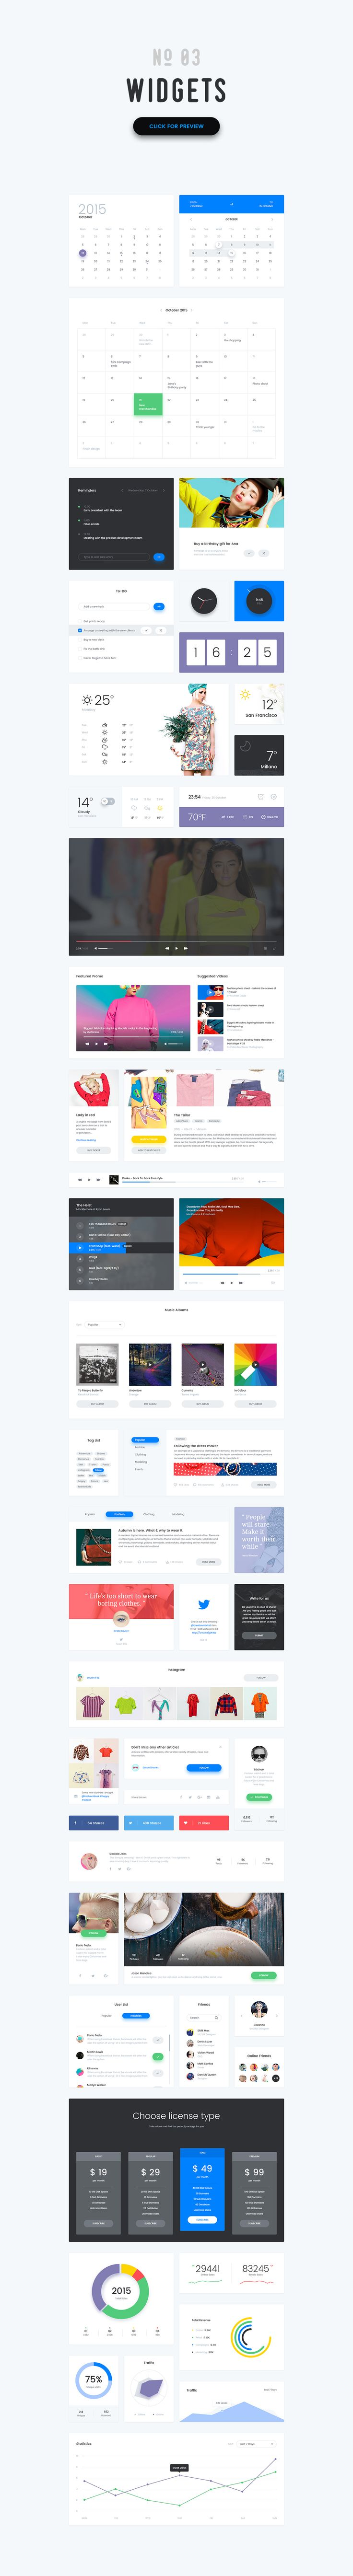 -50%- Vivid - Soft Material UI Kit by The UI Shop on Creative Market